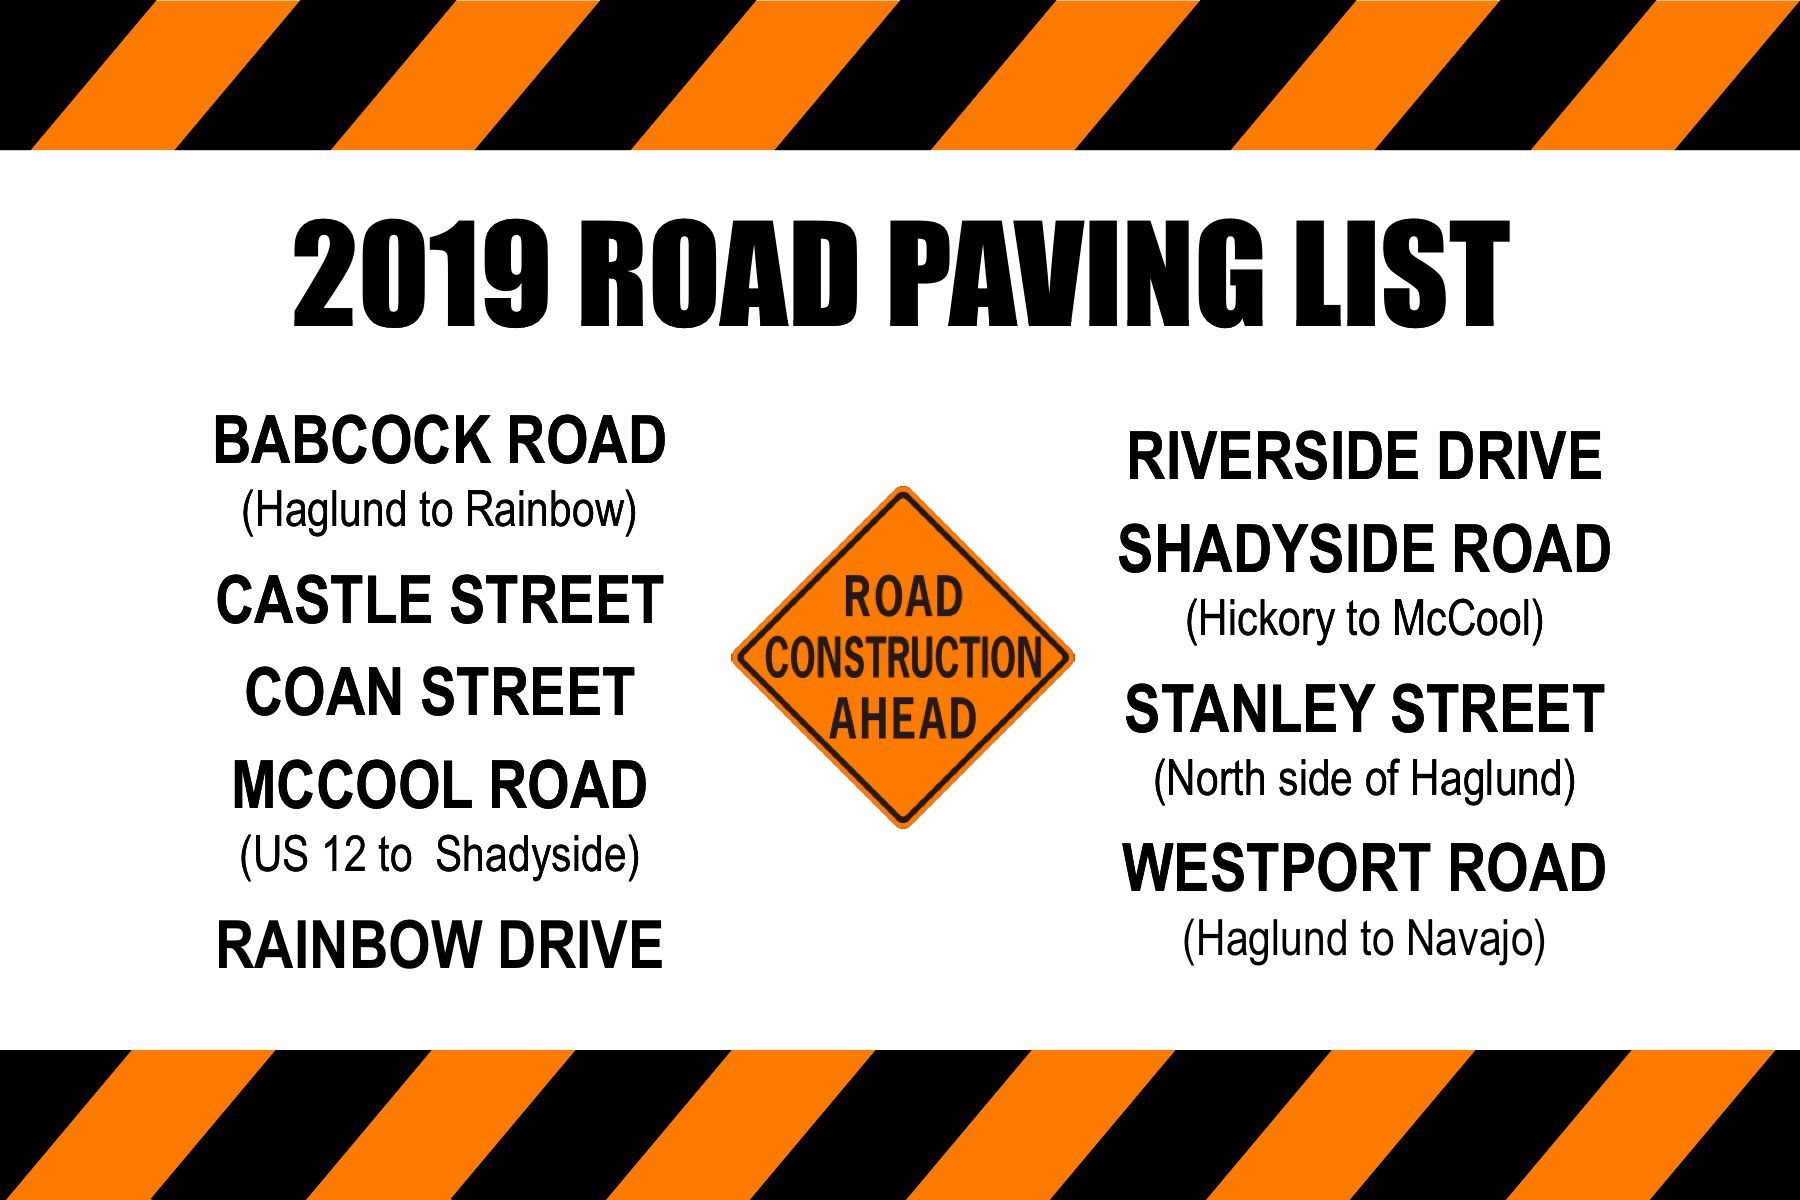 Road paving projects 2019